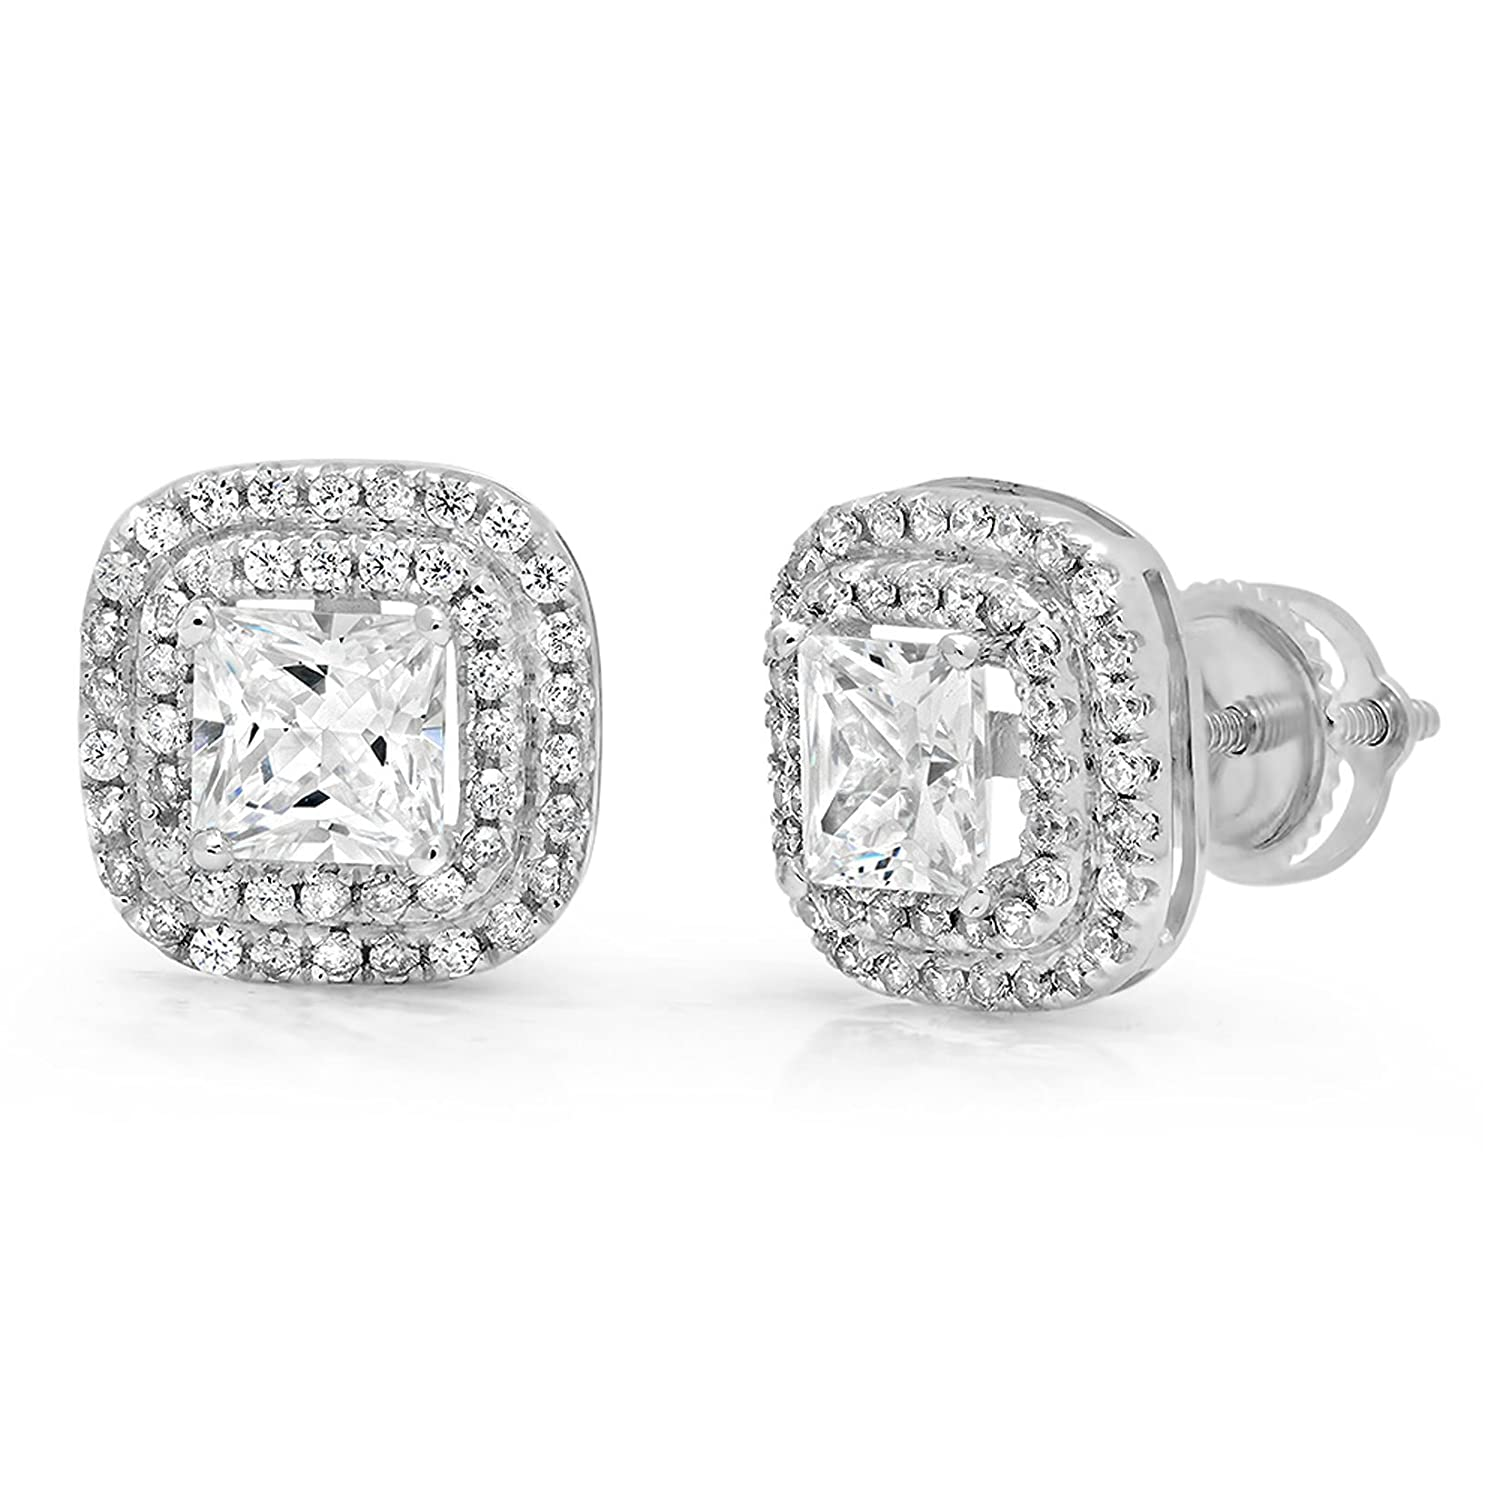 e7635e75b Amazon.com: 2.99CT Simulated Diamond CZ Princess Cut SOLITAIRE Double HALO  Stud EARRINGS Real 14K White GOLD: Jewelry